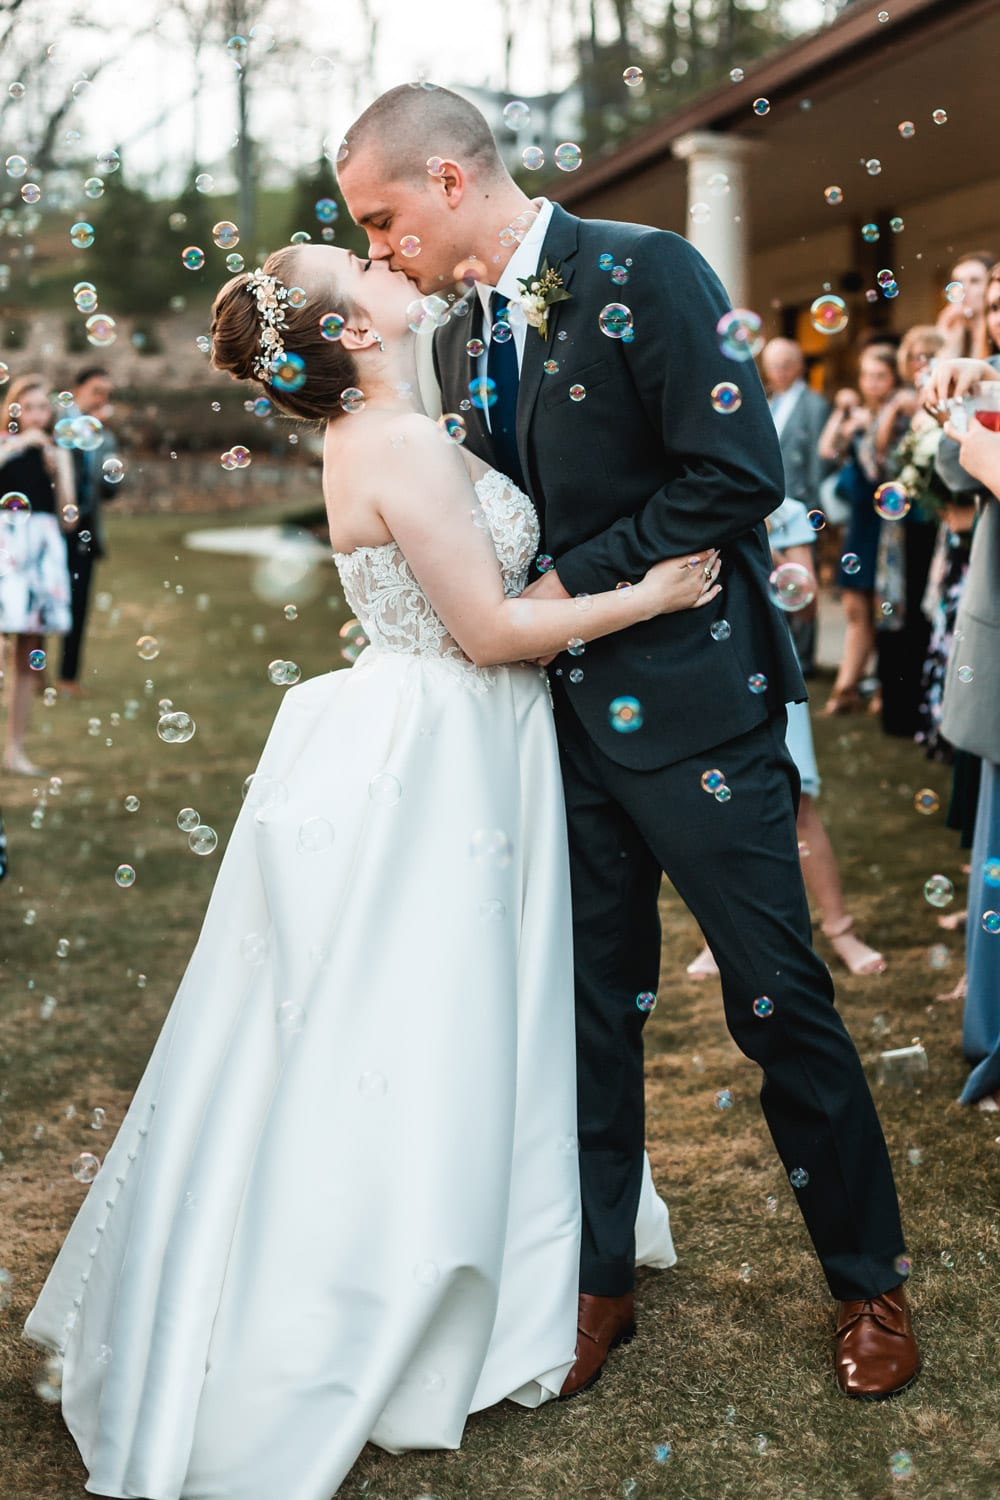 Bride and groom kiss surrounded by bubbles